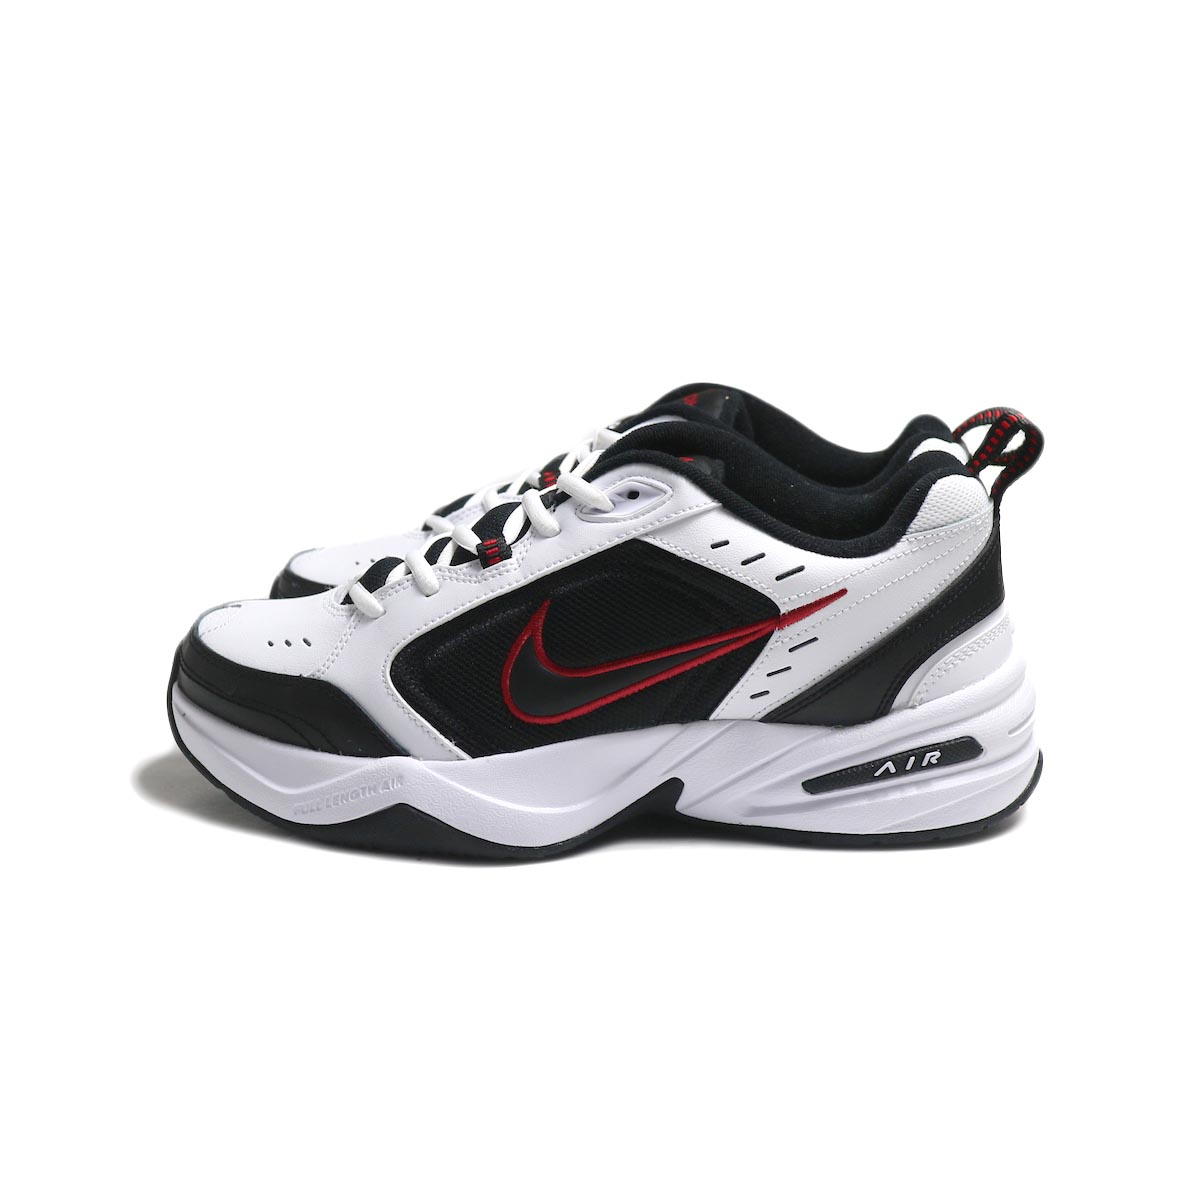 NIKE / AIR MONARCH IV -White/Black (415445)